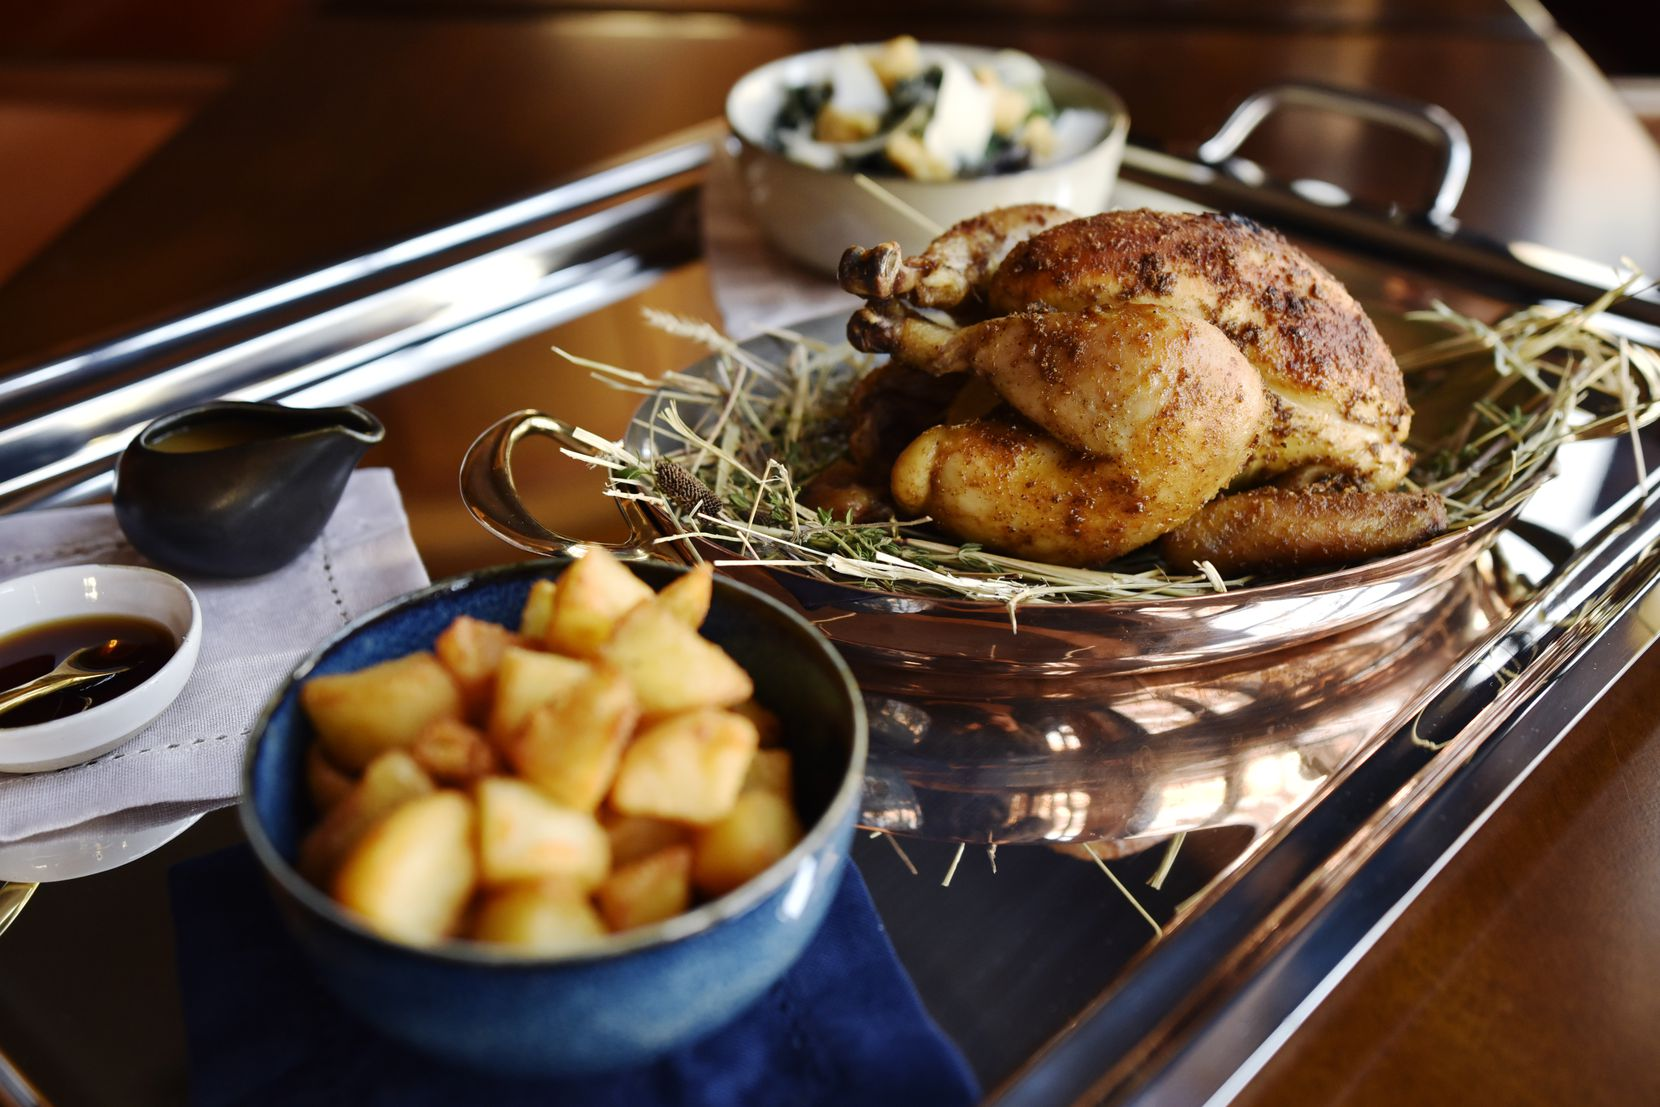 Georgie Rotisserie chicken for two, with two sides of your choice, from the new restaurant Georgie, by Curtis Stone, Nov. 17, 2019 in Dallas. Ben Torres/Special Contributor